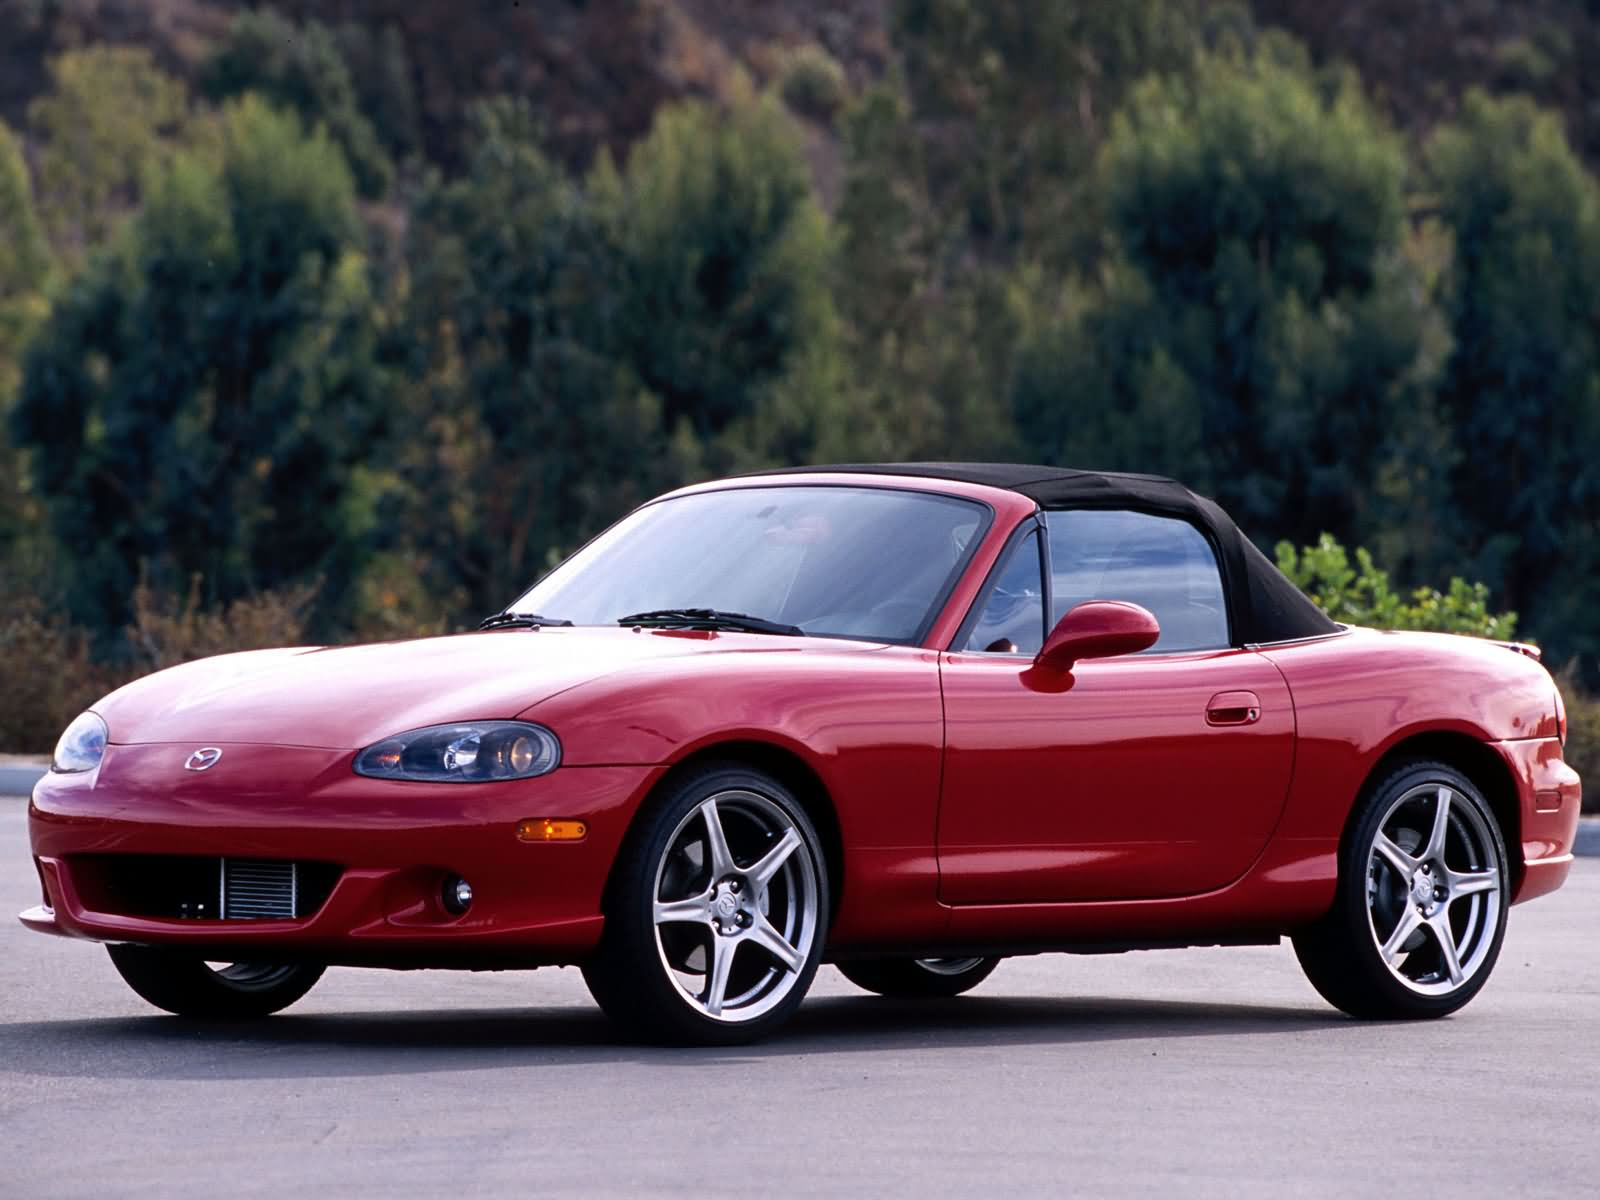 MazdaSpeed MX-5 photo 21615